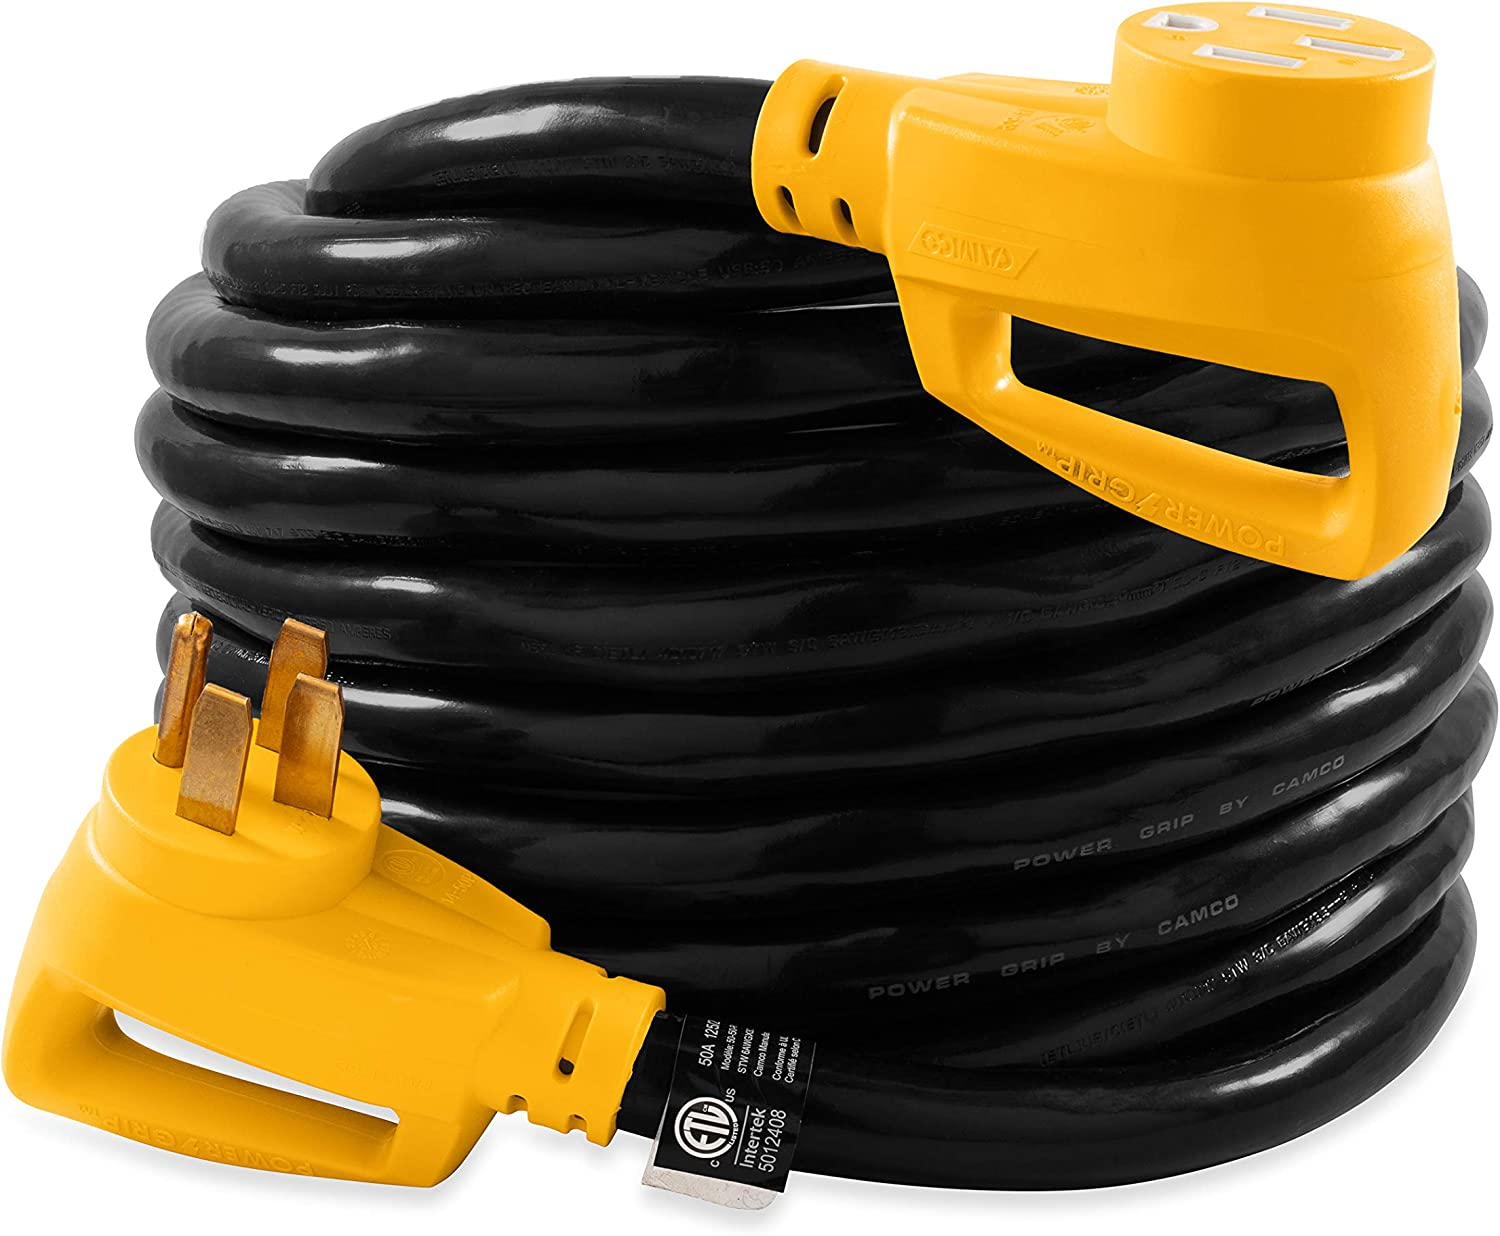 Camco sale 55195 30' Super special price PowerGrip Heavy-Duty 50-Amp Extension Co Outdoor